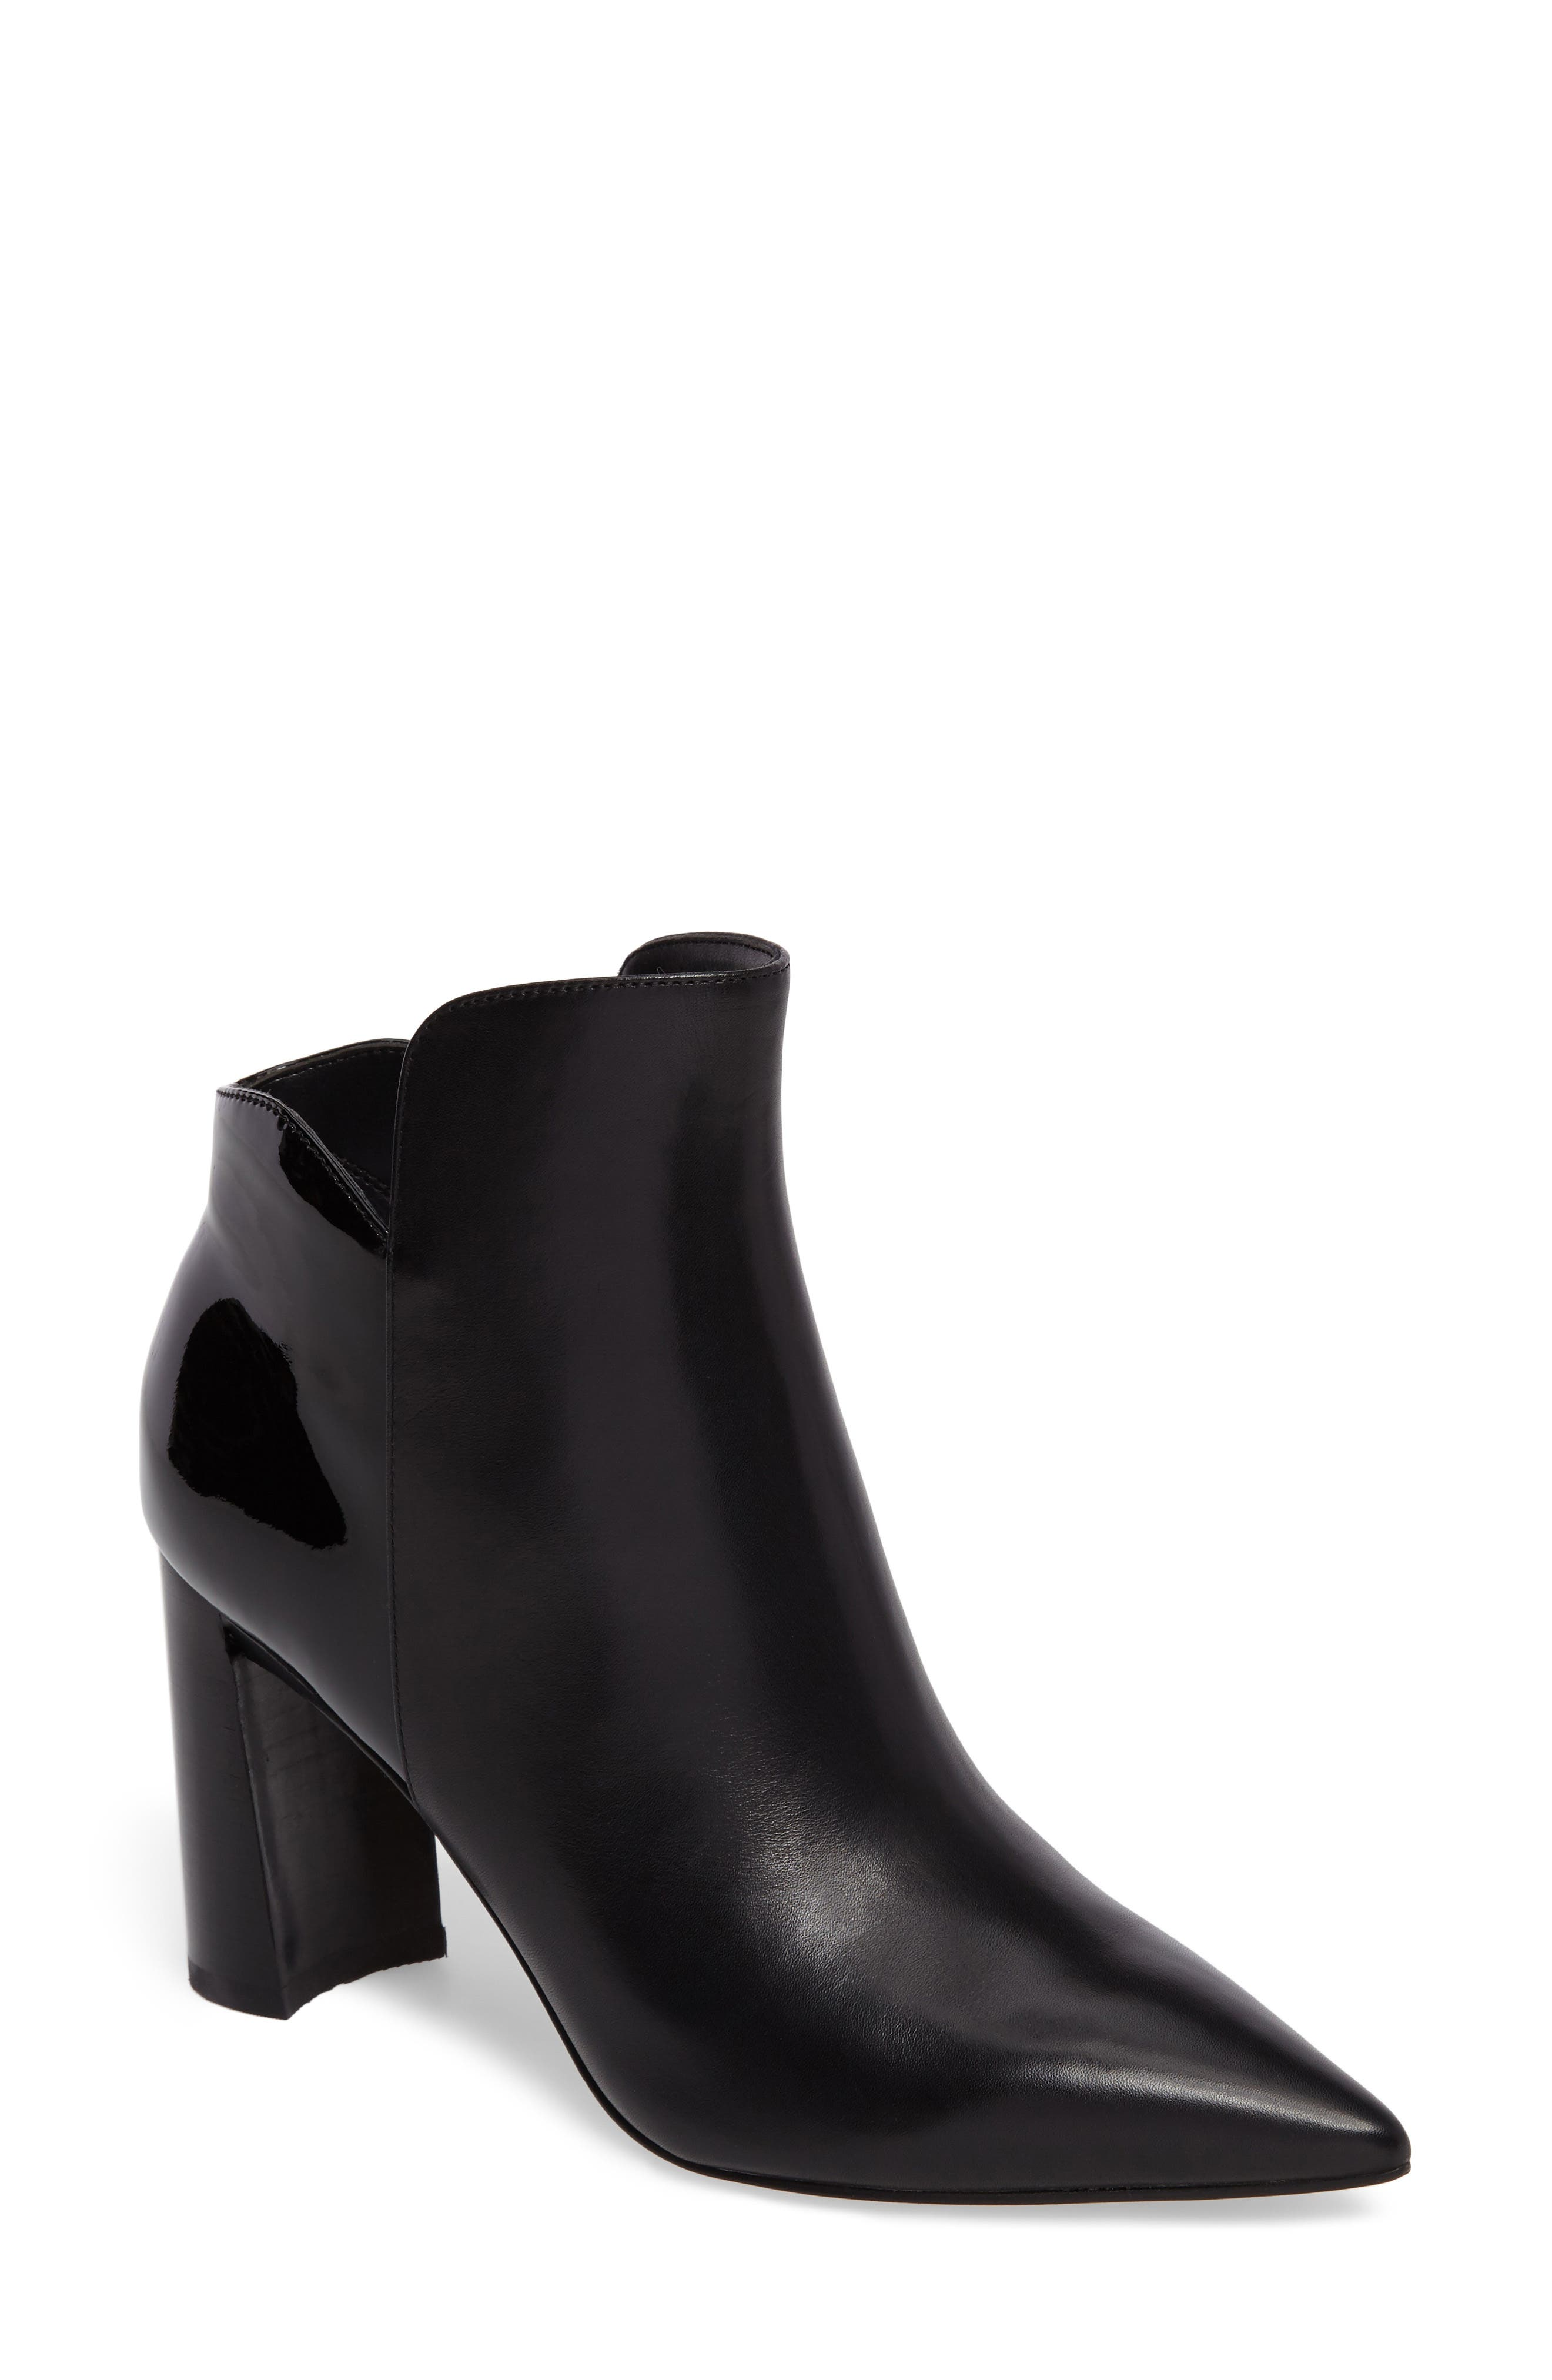 Alternate Image 1 Selected - Marc Fisher LTD Harper Pointy Toe Bootie (Women)